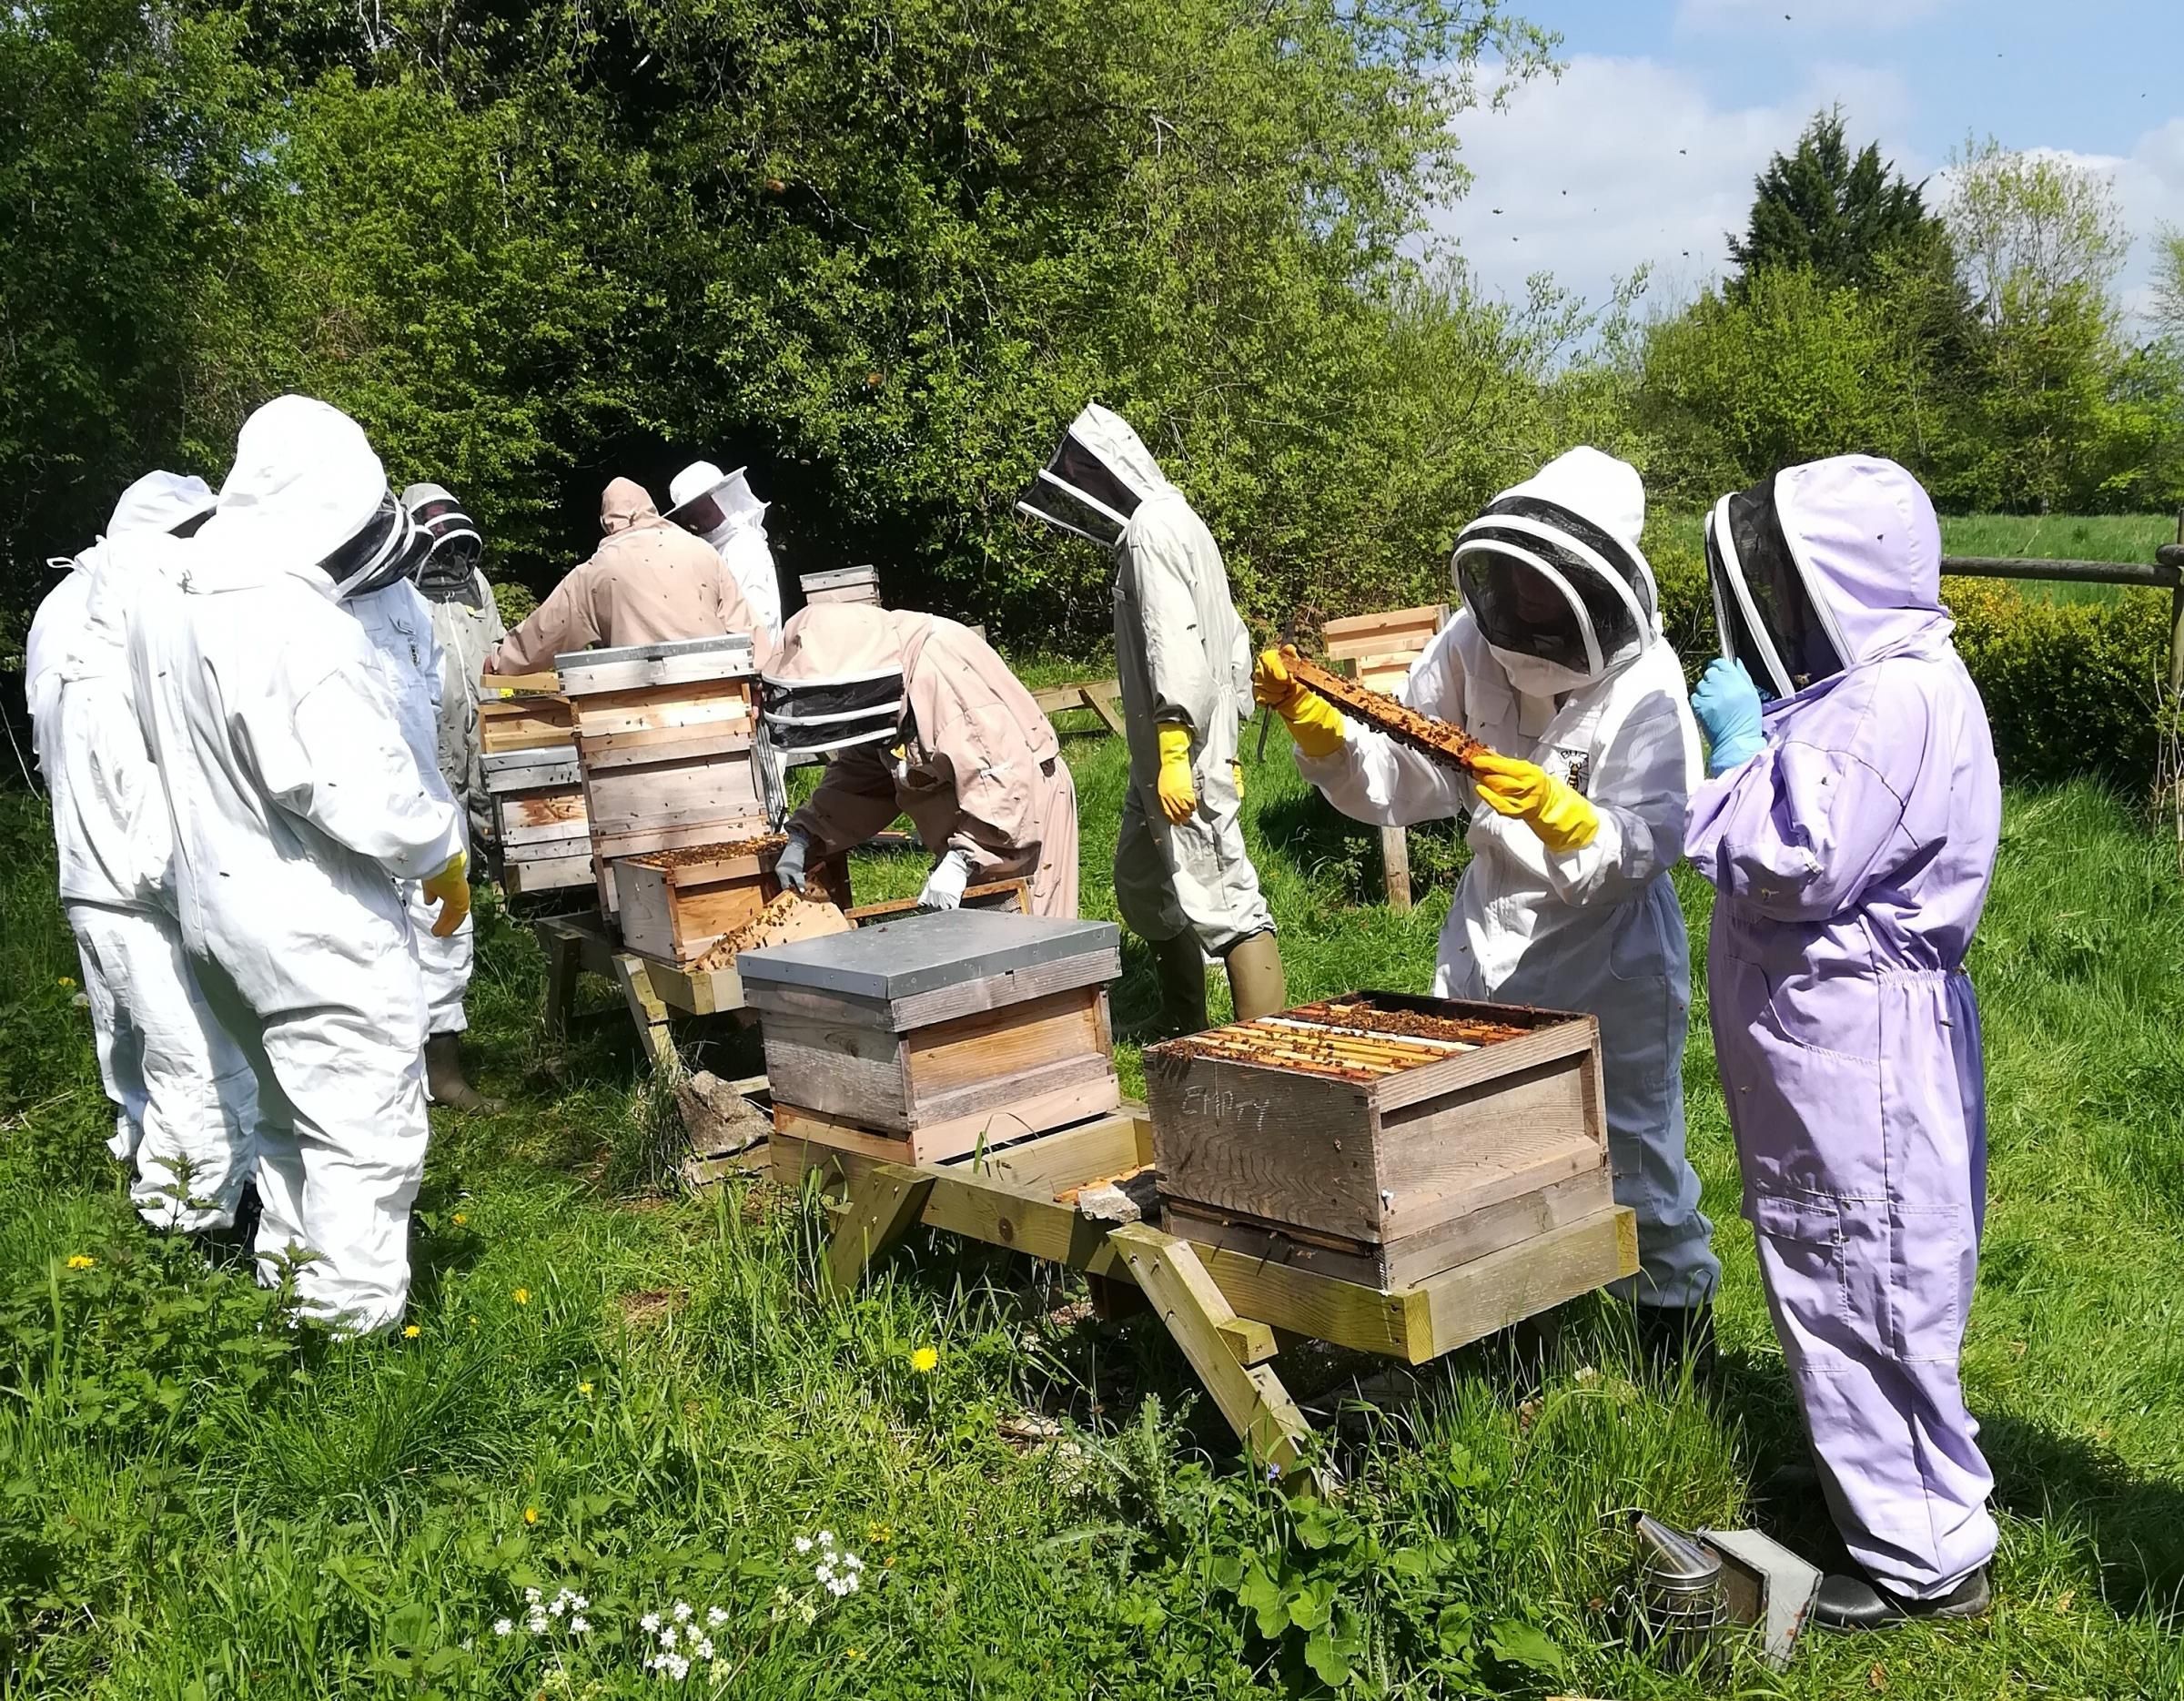 On Sunday 16th September the Stroud Beekeepers Association is running its annual Taster Day